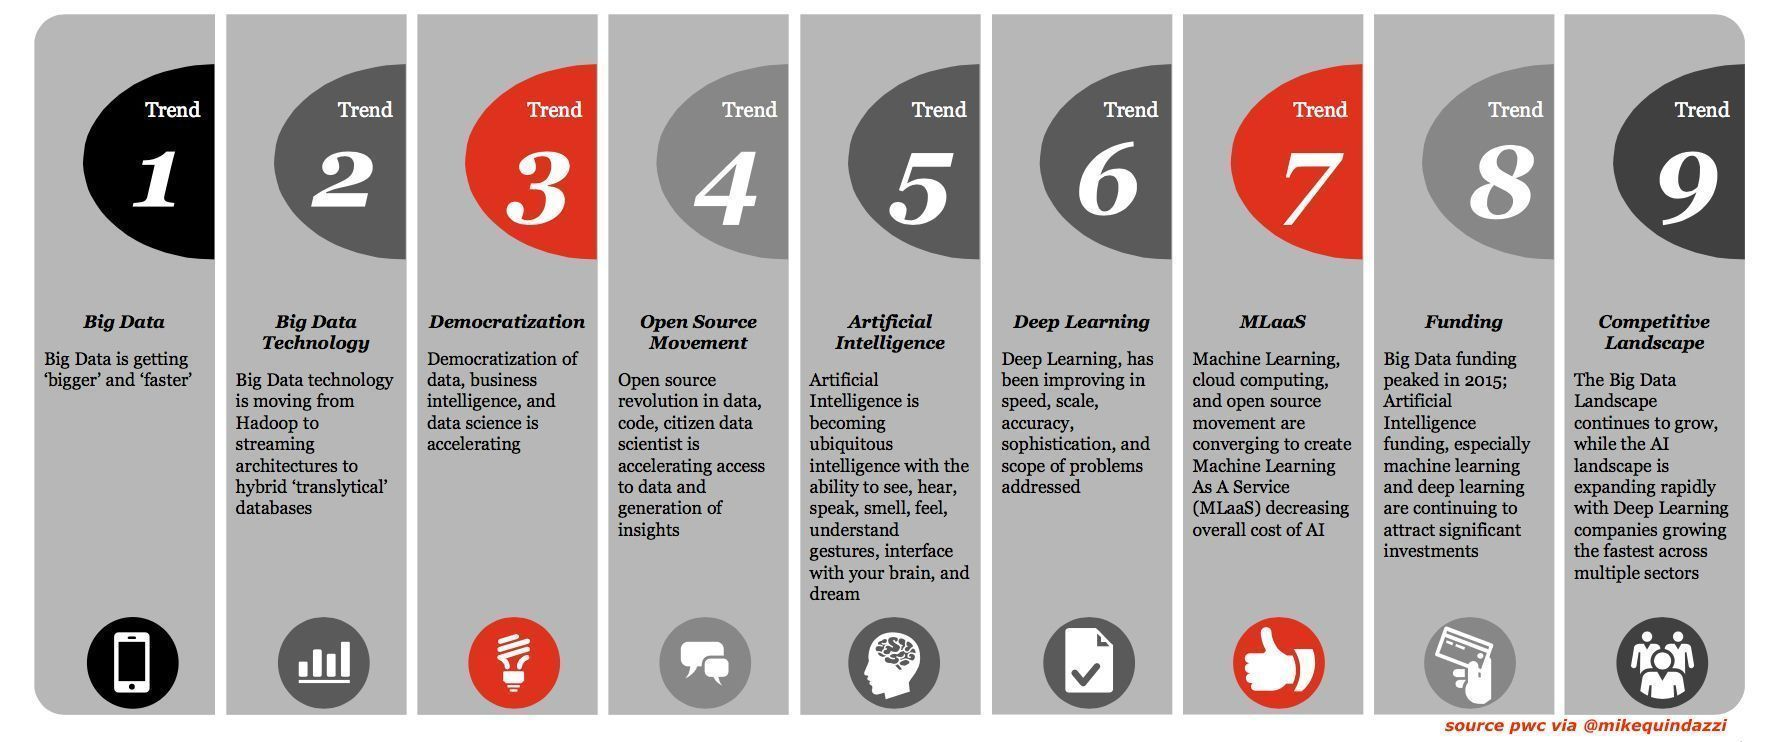 9 Bigdata Trends Infographics Pwc Via Mikequindazzi Ai Artificialintelligence Iot Mlaa Deep Learning Big Data Technologies Machine Learning